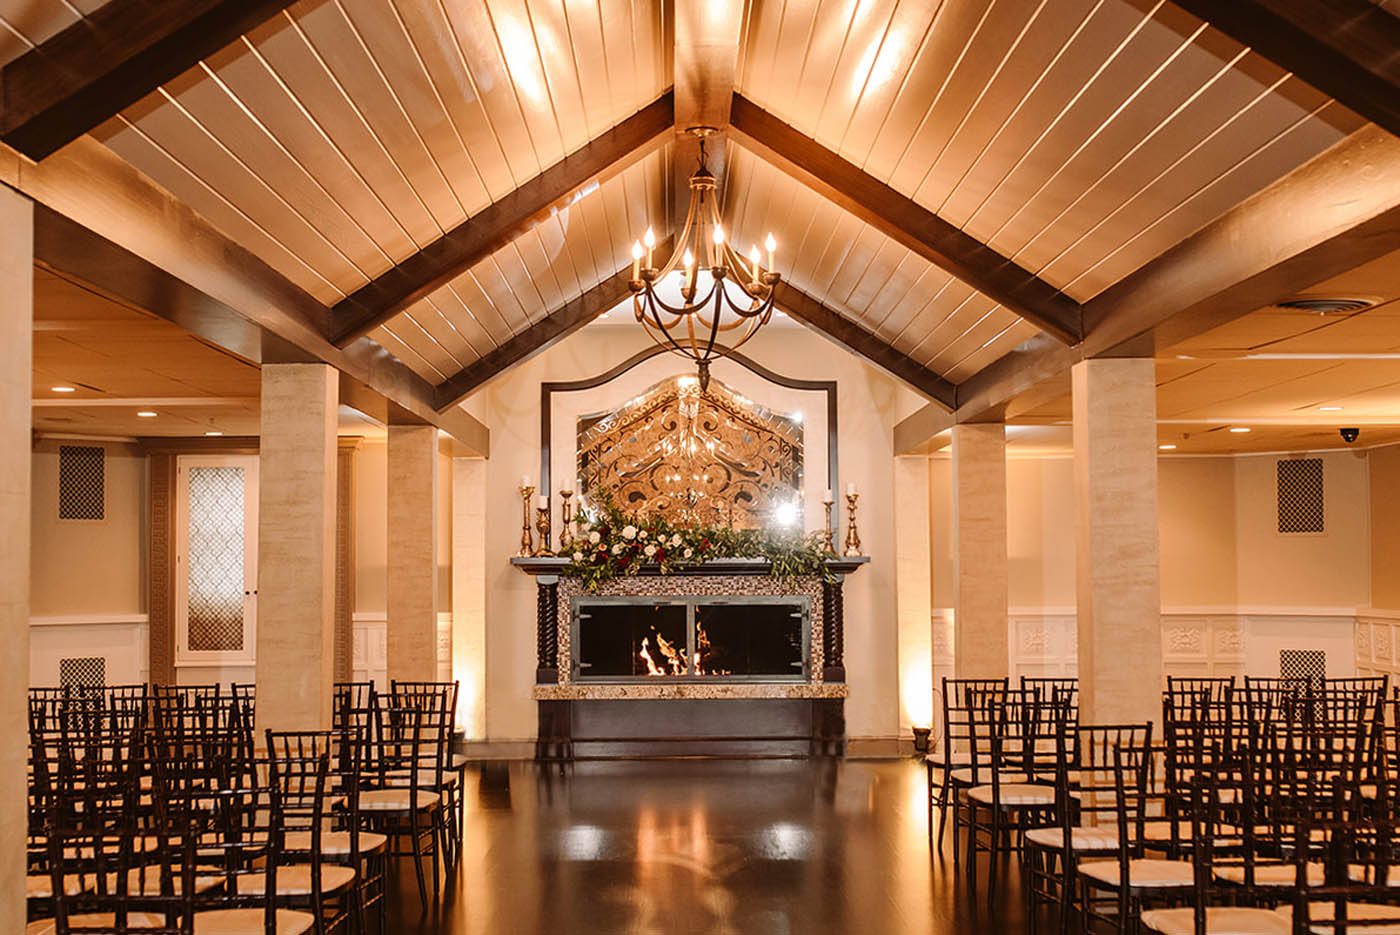 Dramatic indoor wedding ceremony venue